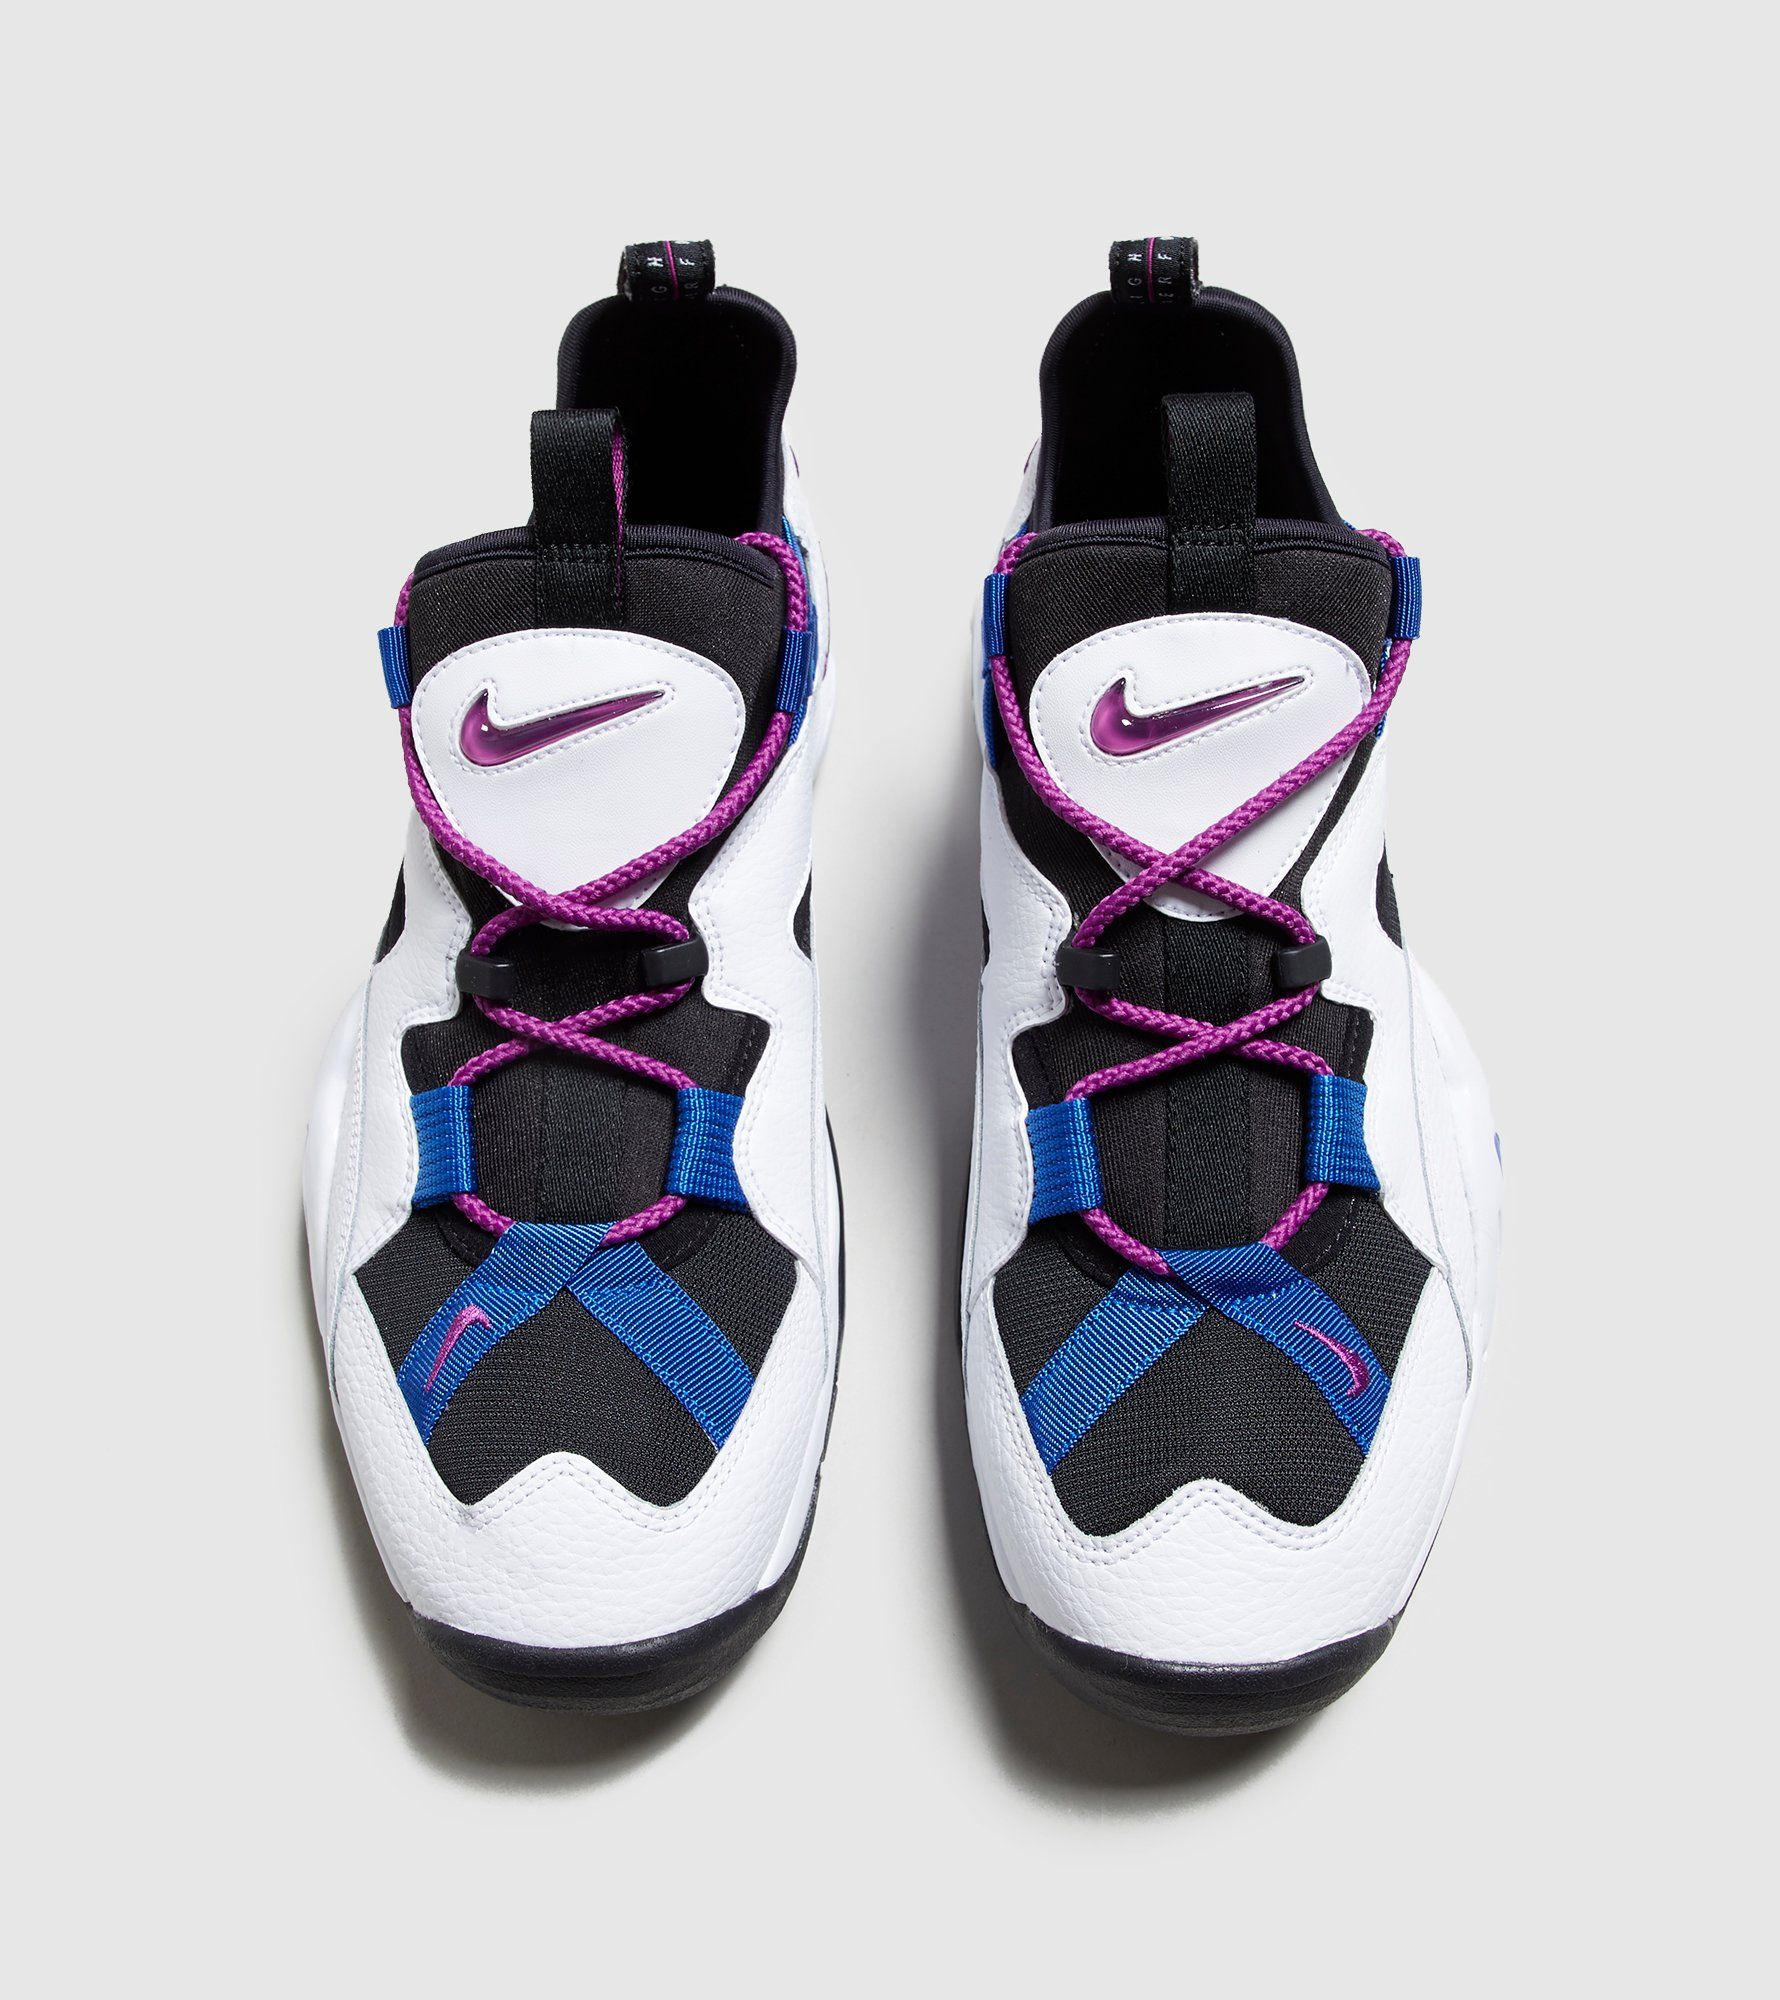 Nike Air Scream LWP